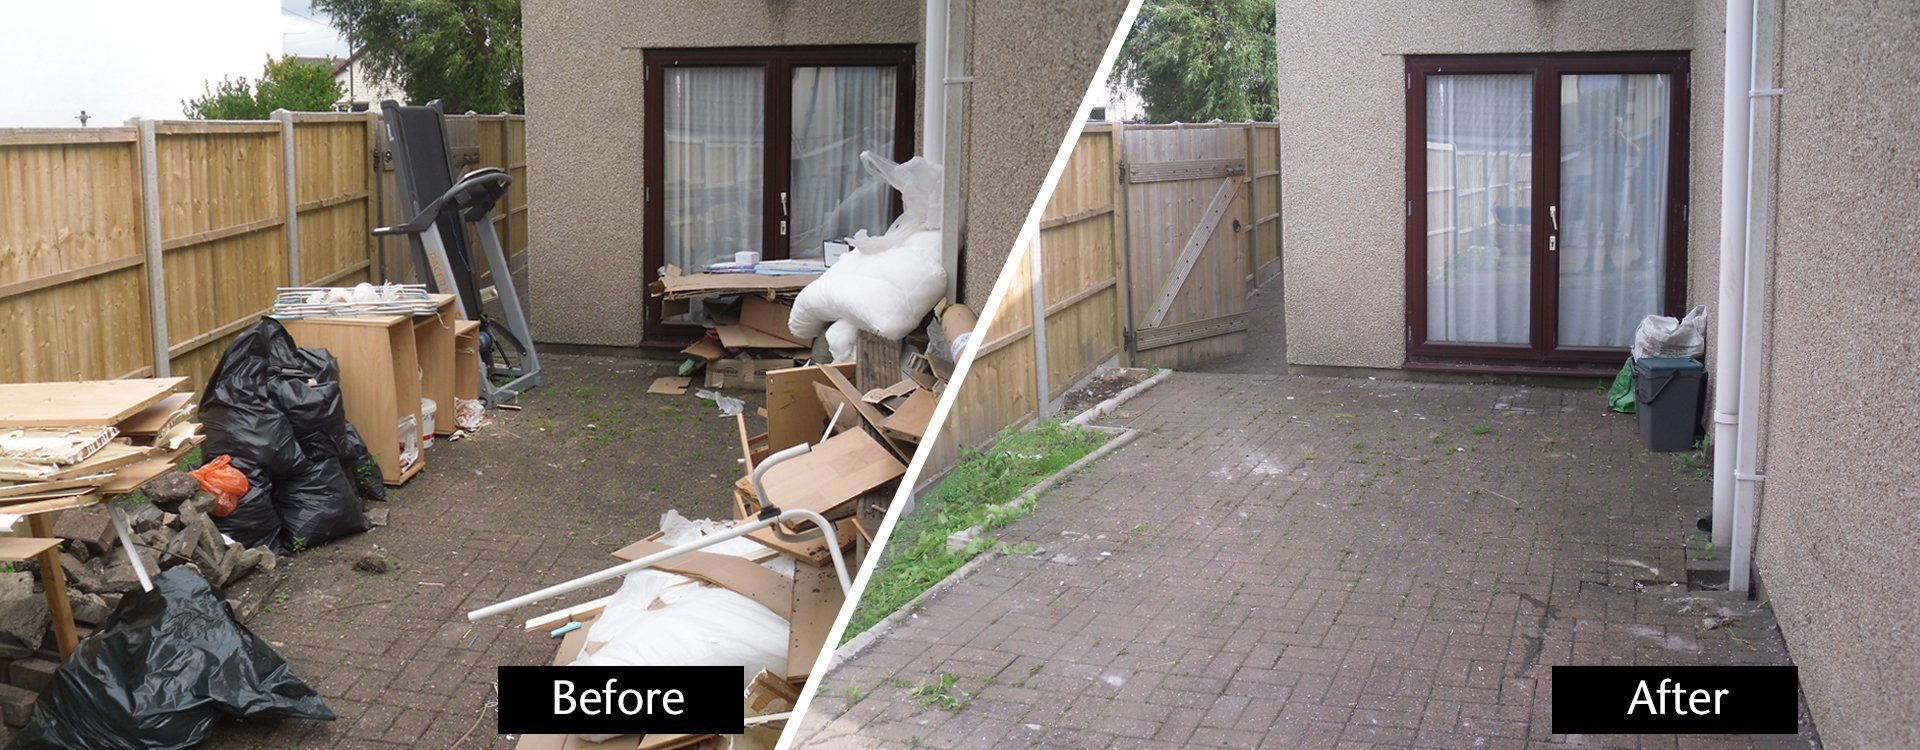 waste before and after disposal